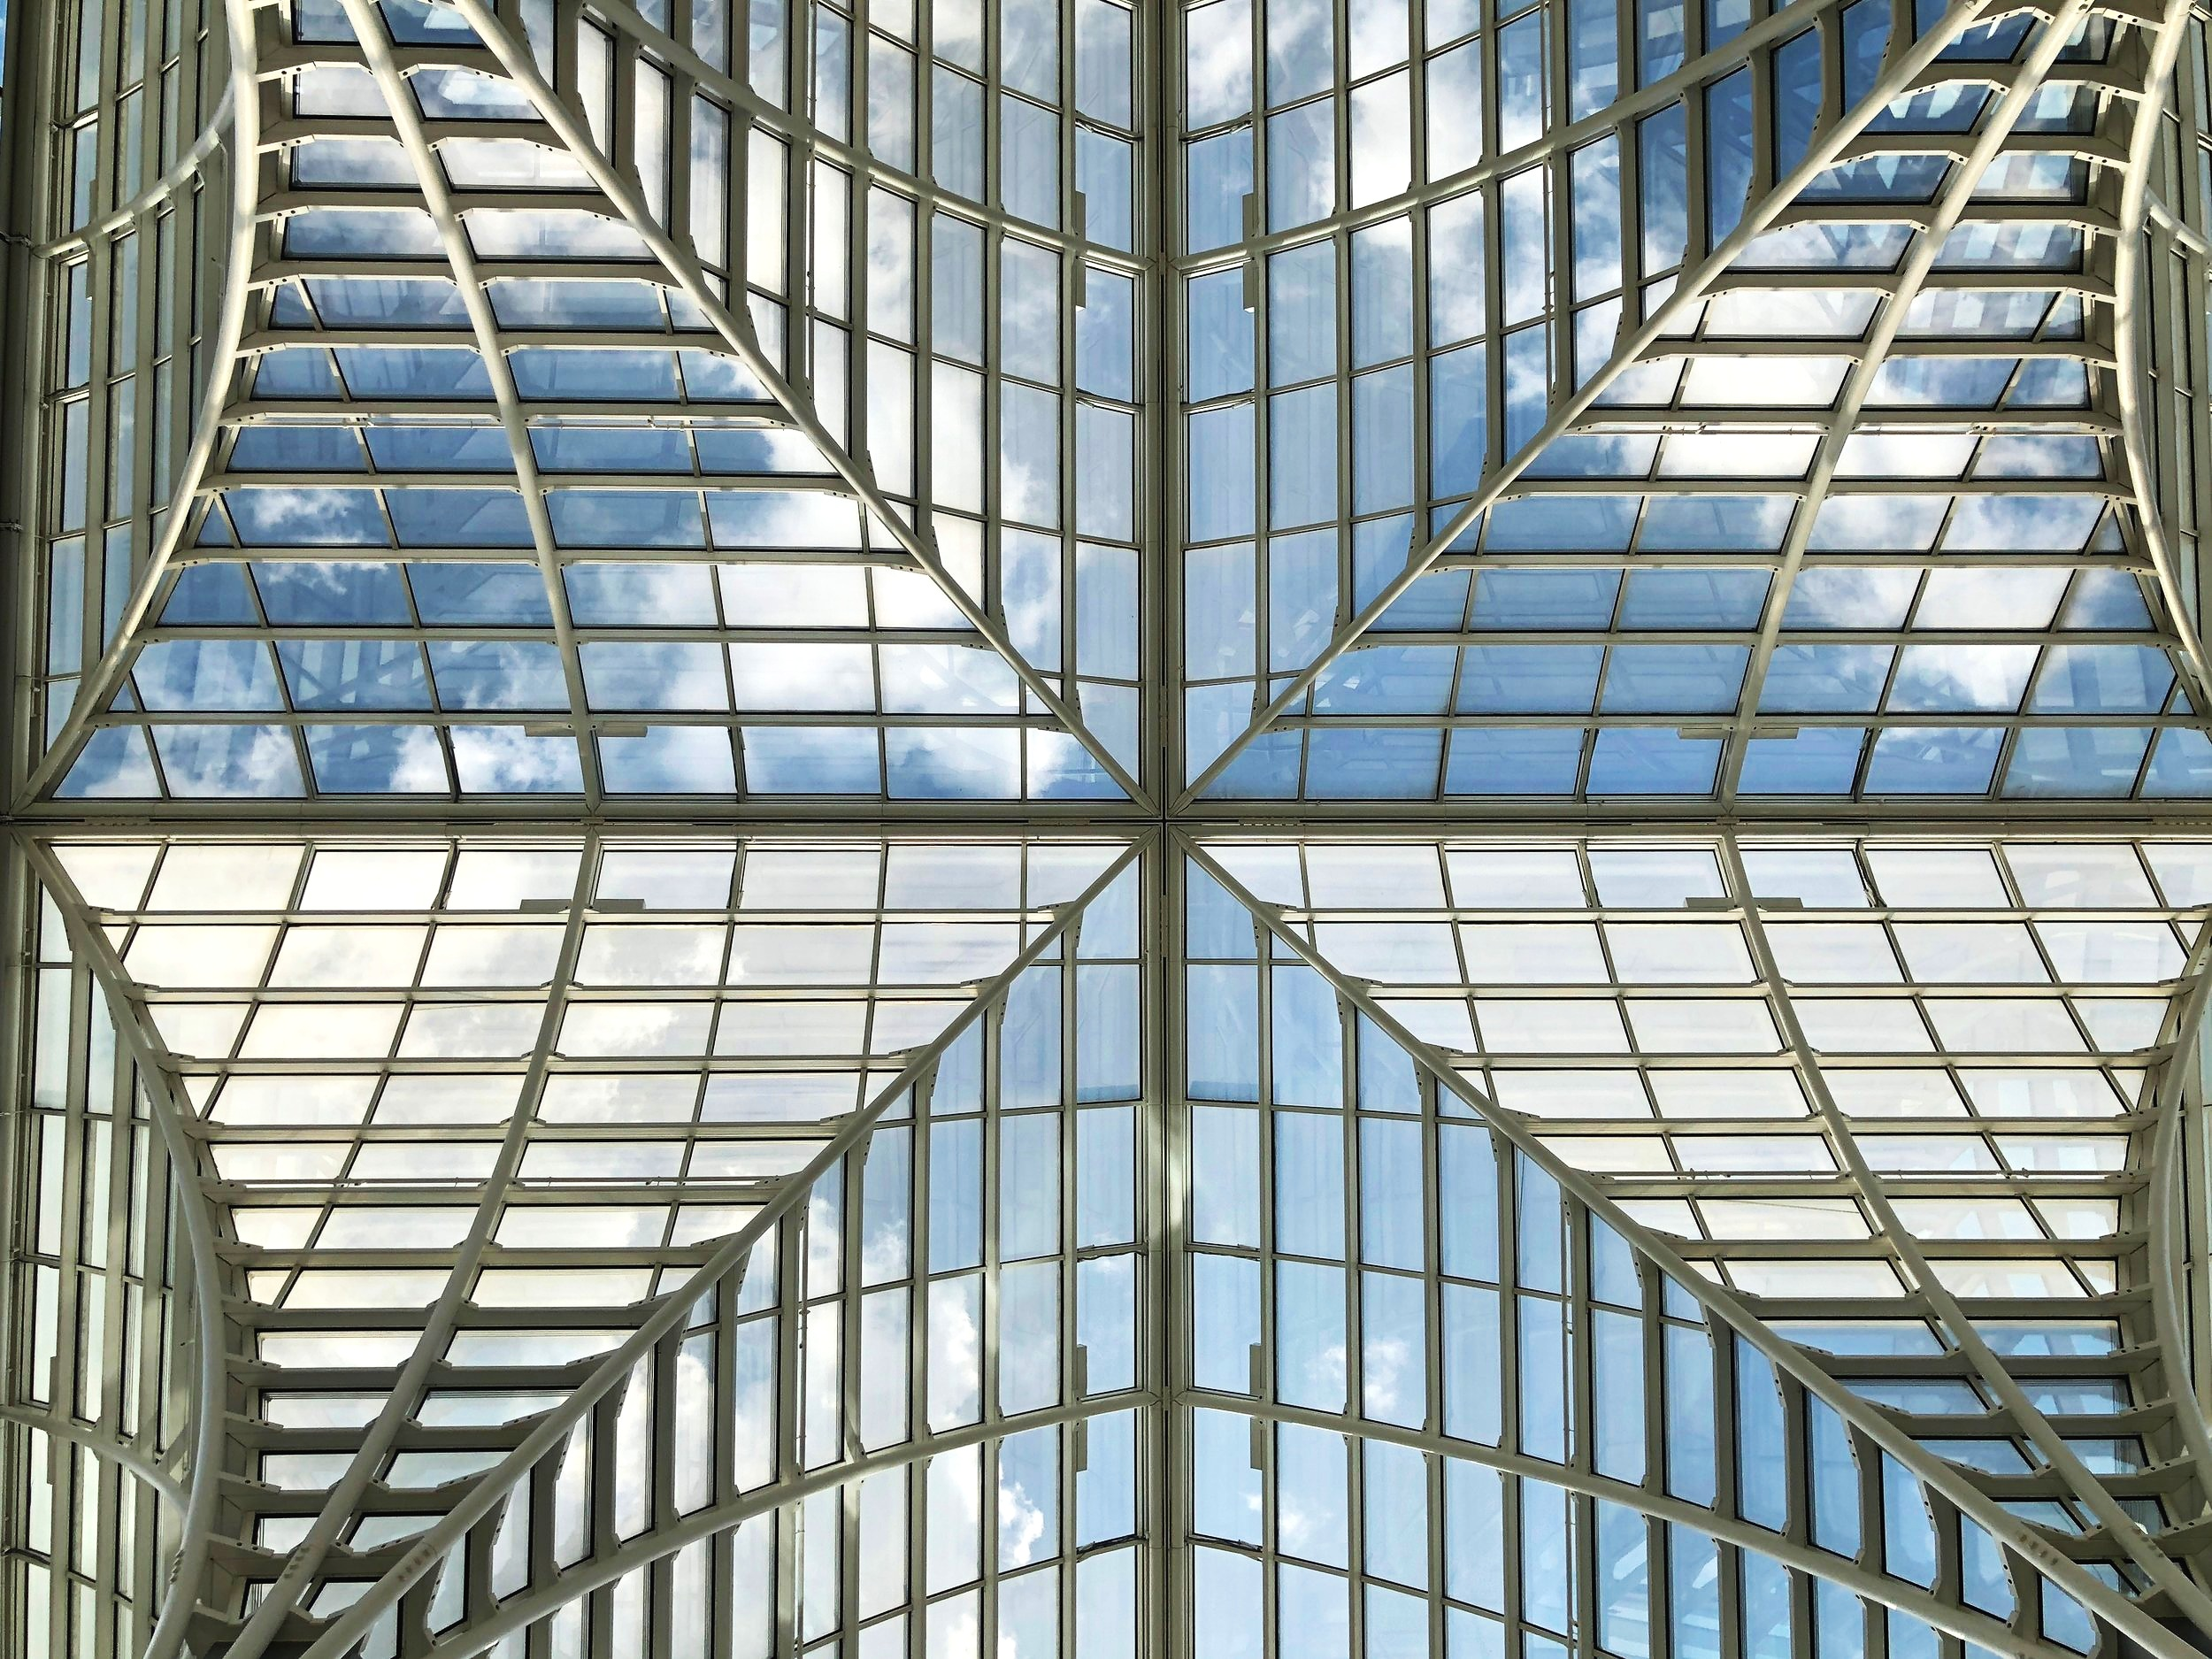 The Rothman Winter Garden glass roof at the UChicago Booth School of Business